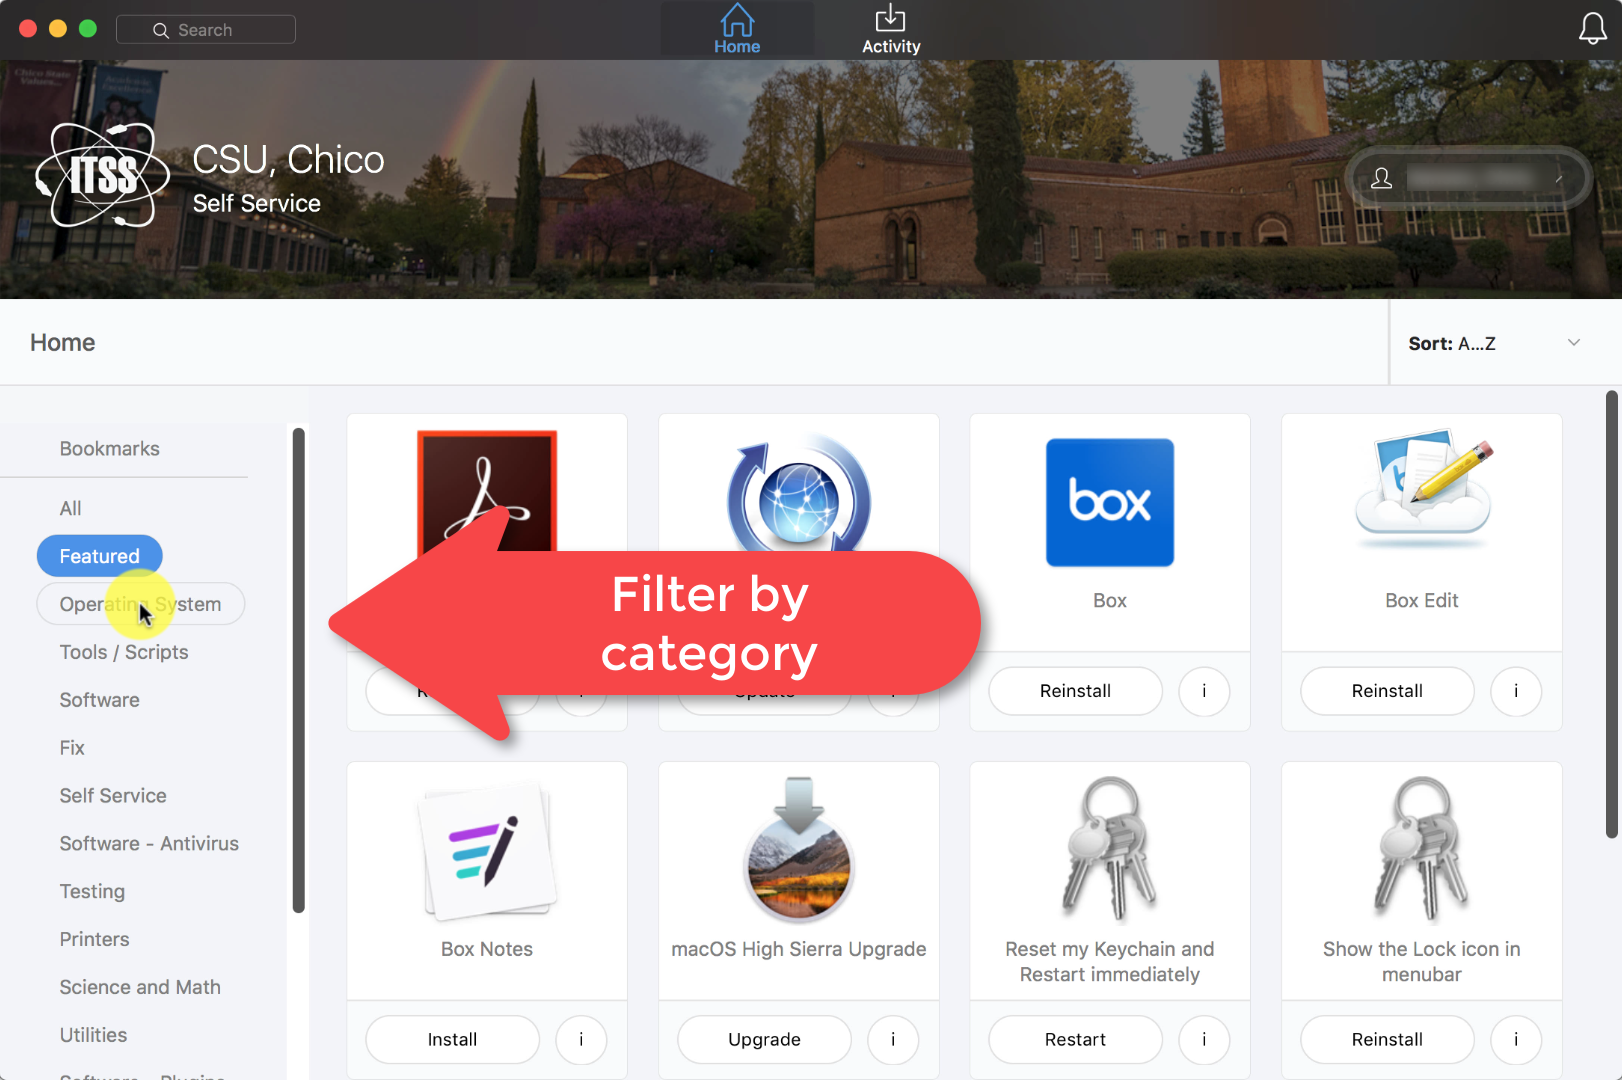 Categories buttons on the left allow you to filter for content, or use the Search box at the very top of the app.